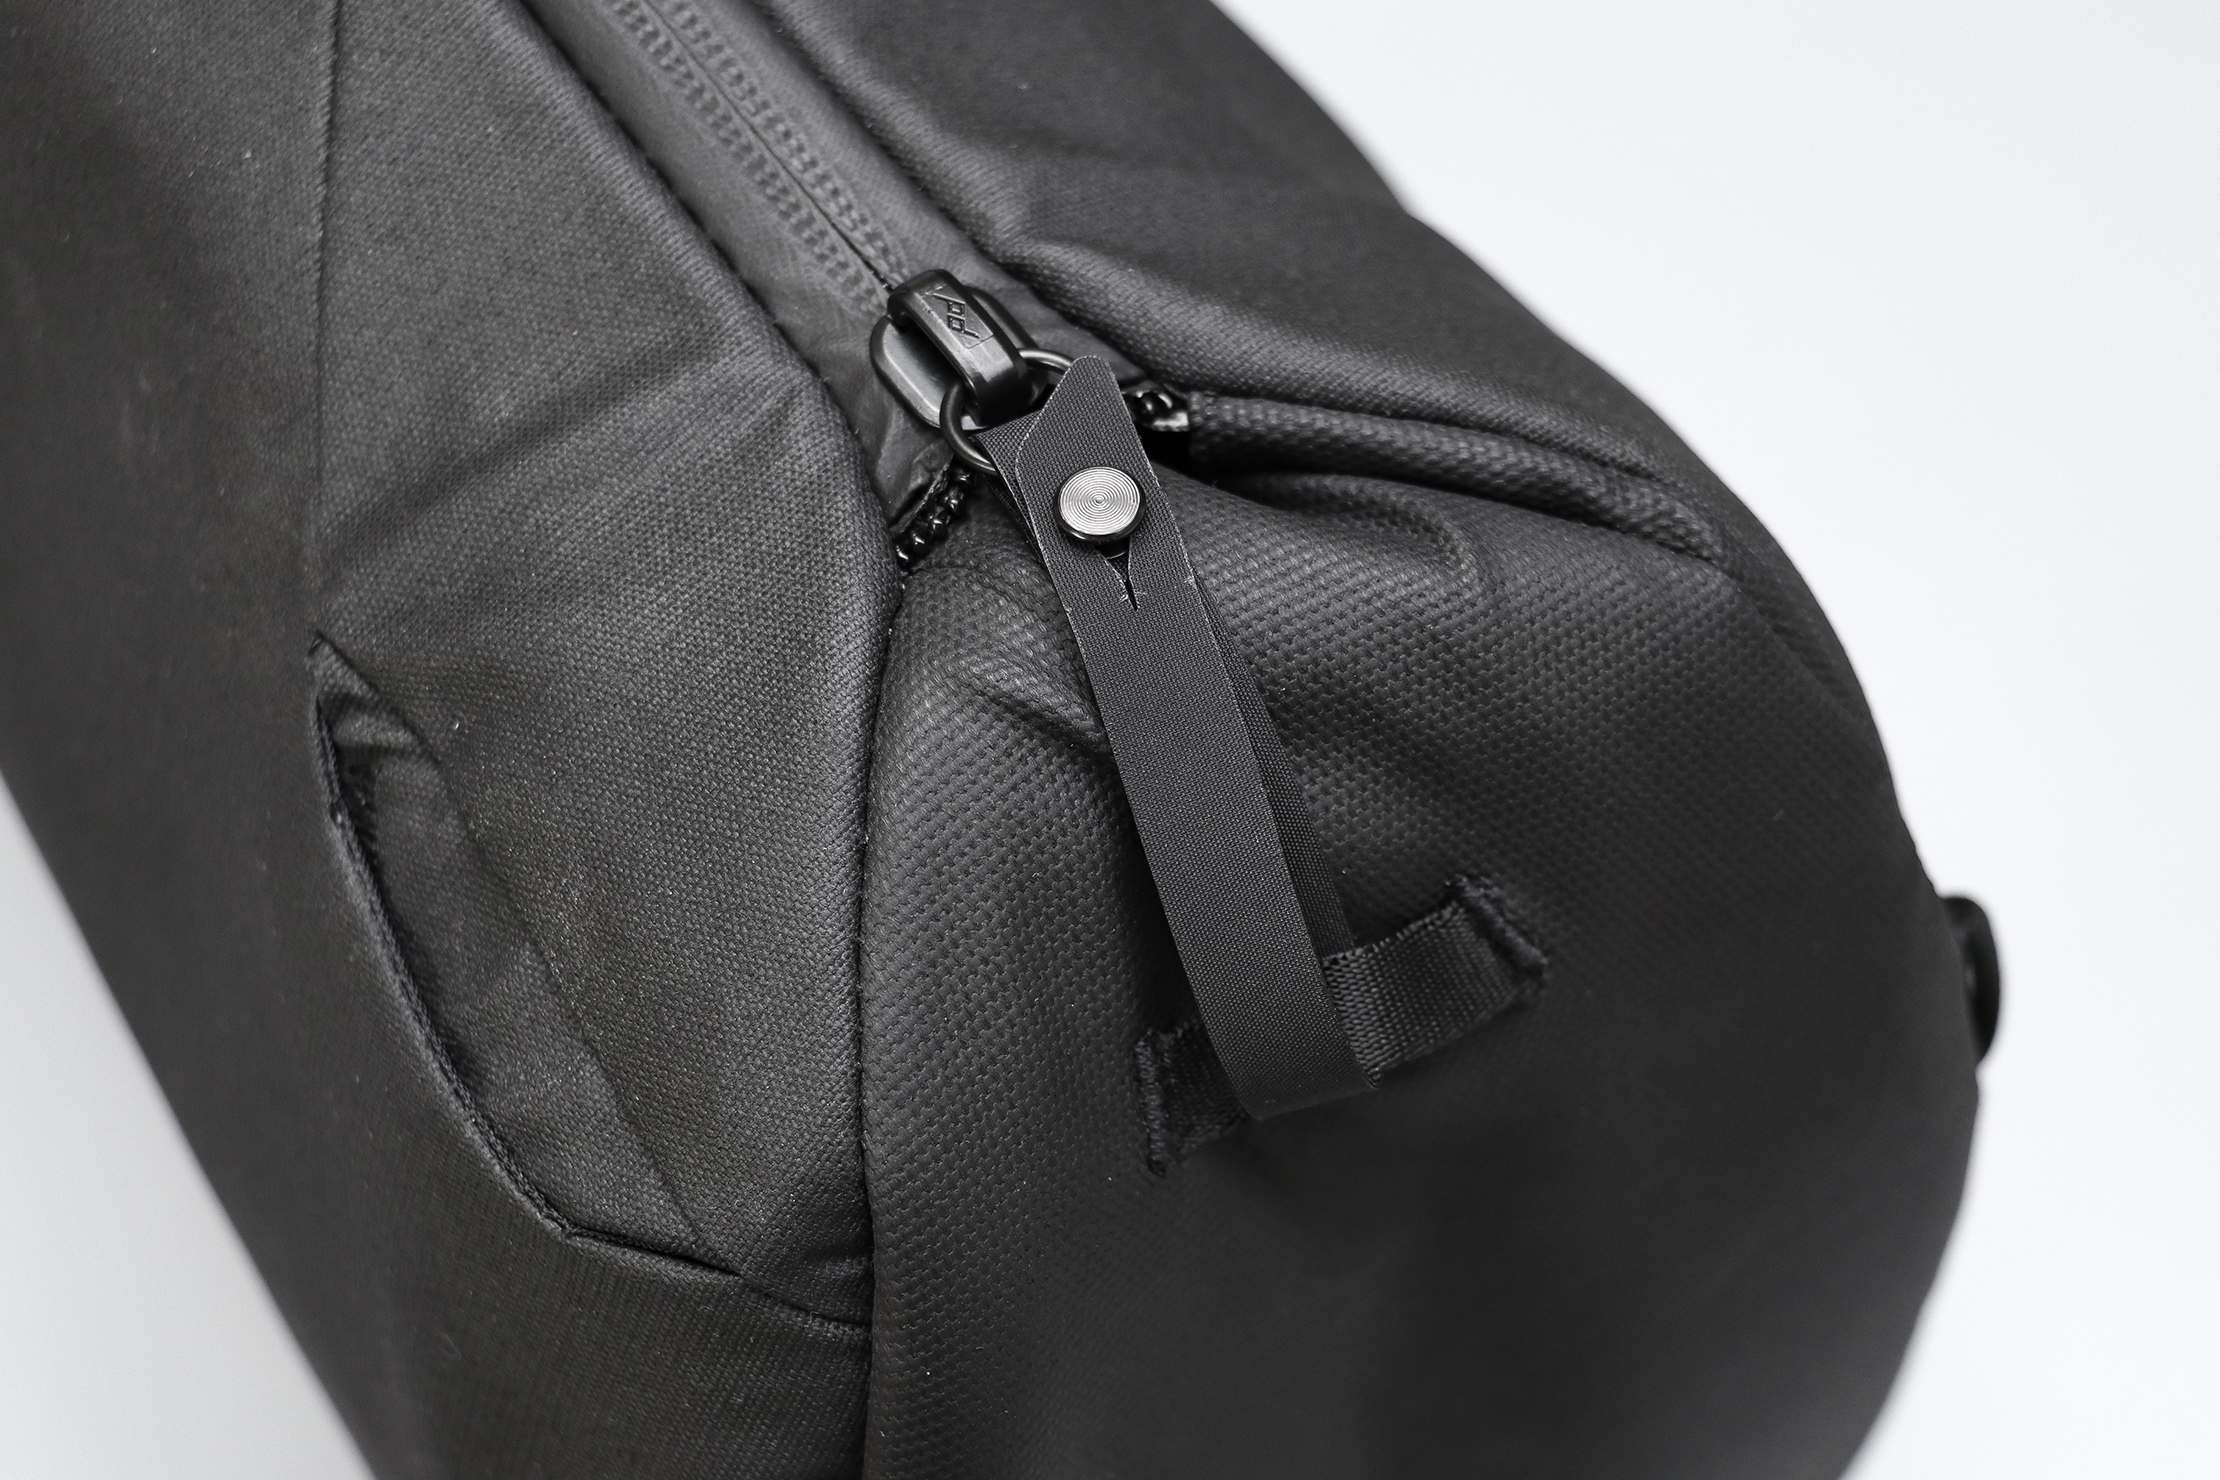 Peak Design Everyday Totepack V2 Zipper Security